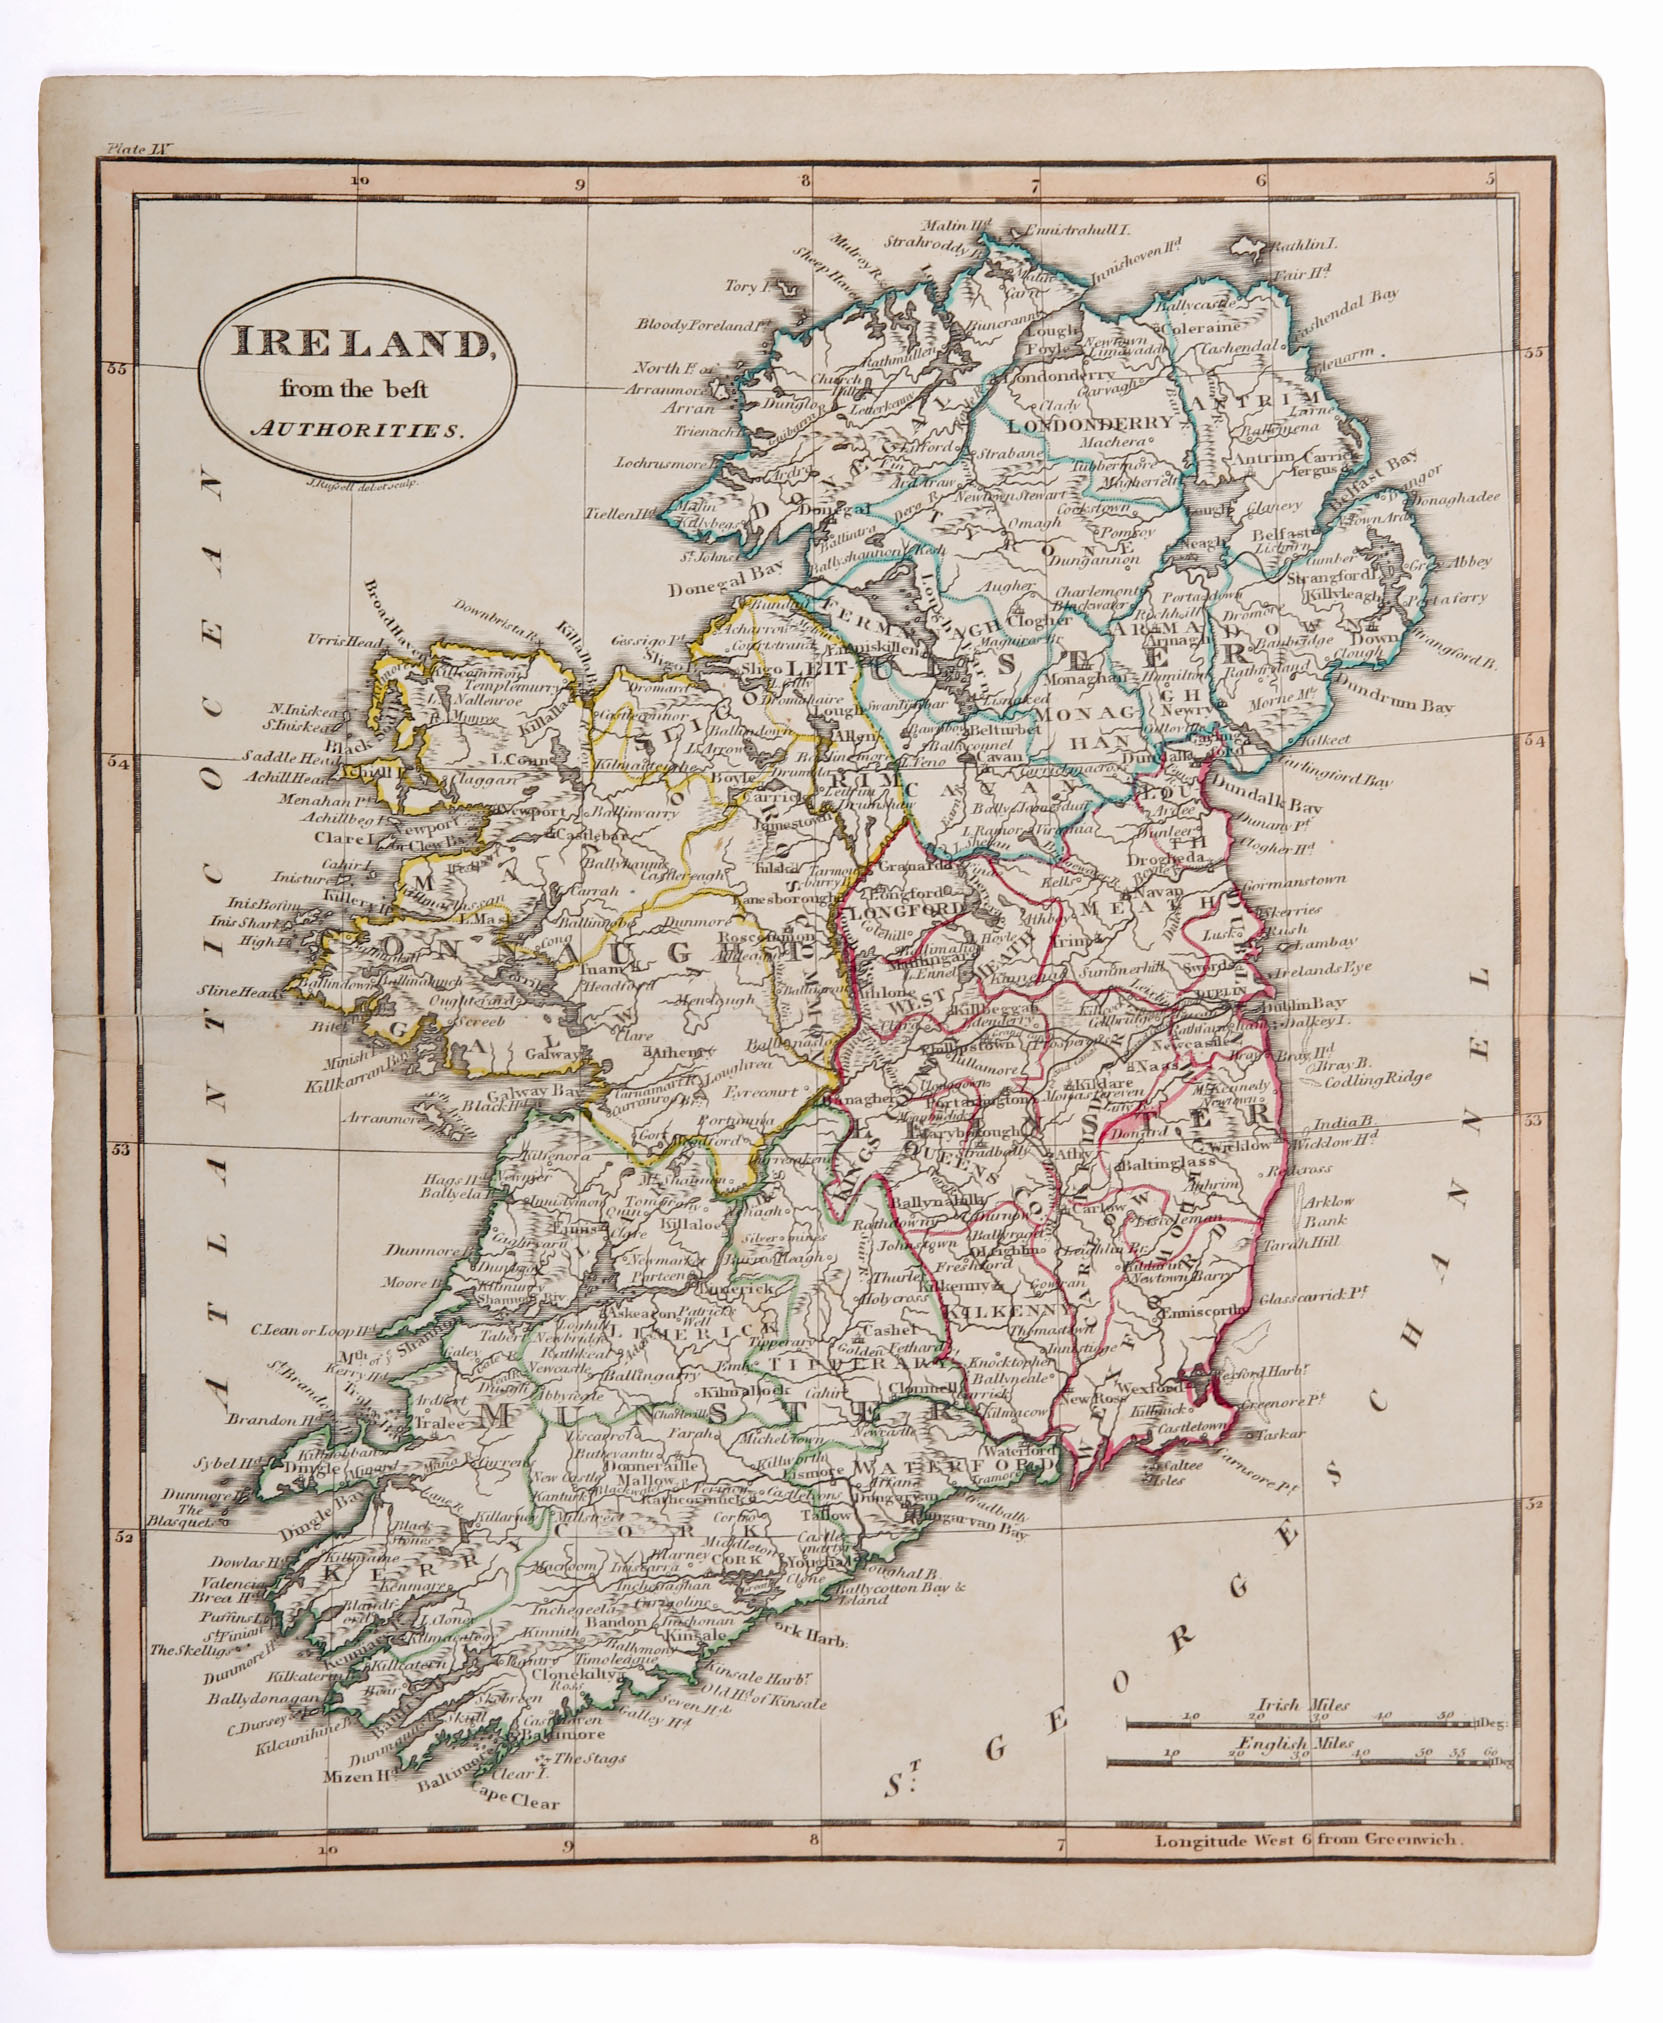 Maps of Ireland. 1744 Map of Ireland by Richard William Seale, Map of the Kingdom of Ireland From - Image 3 of 3